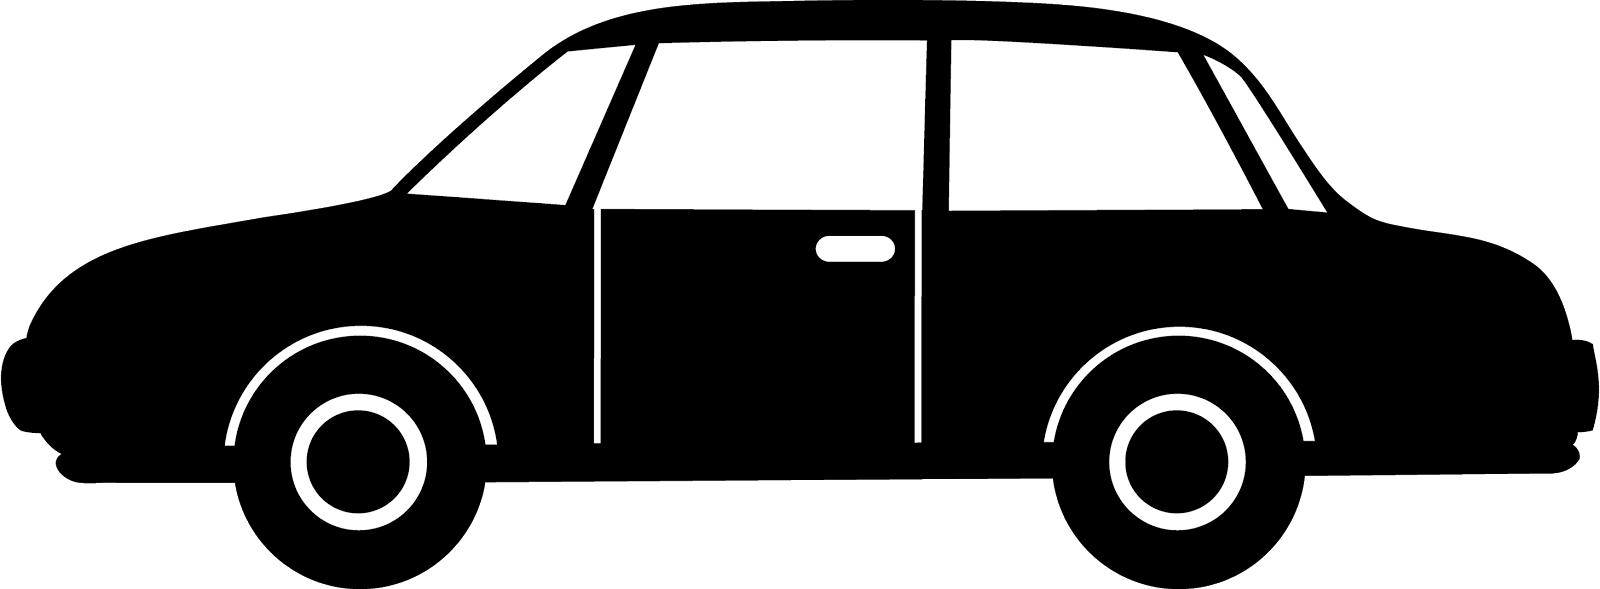 Car Black and white Clip art.